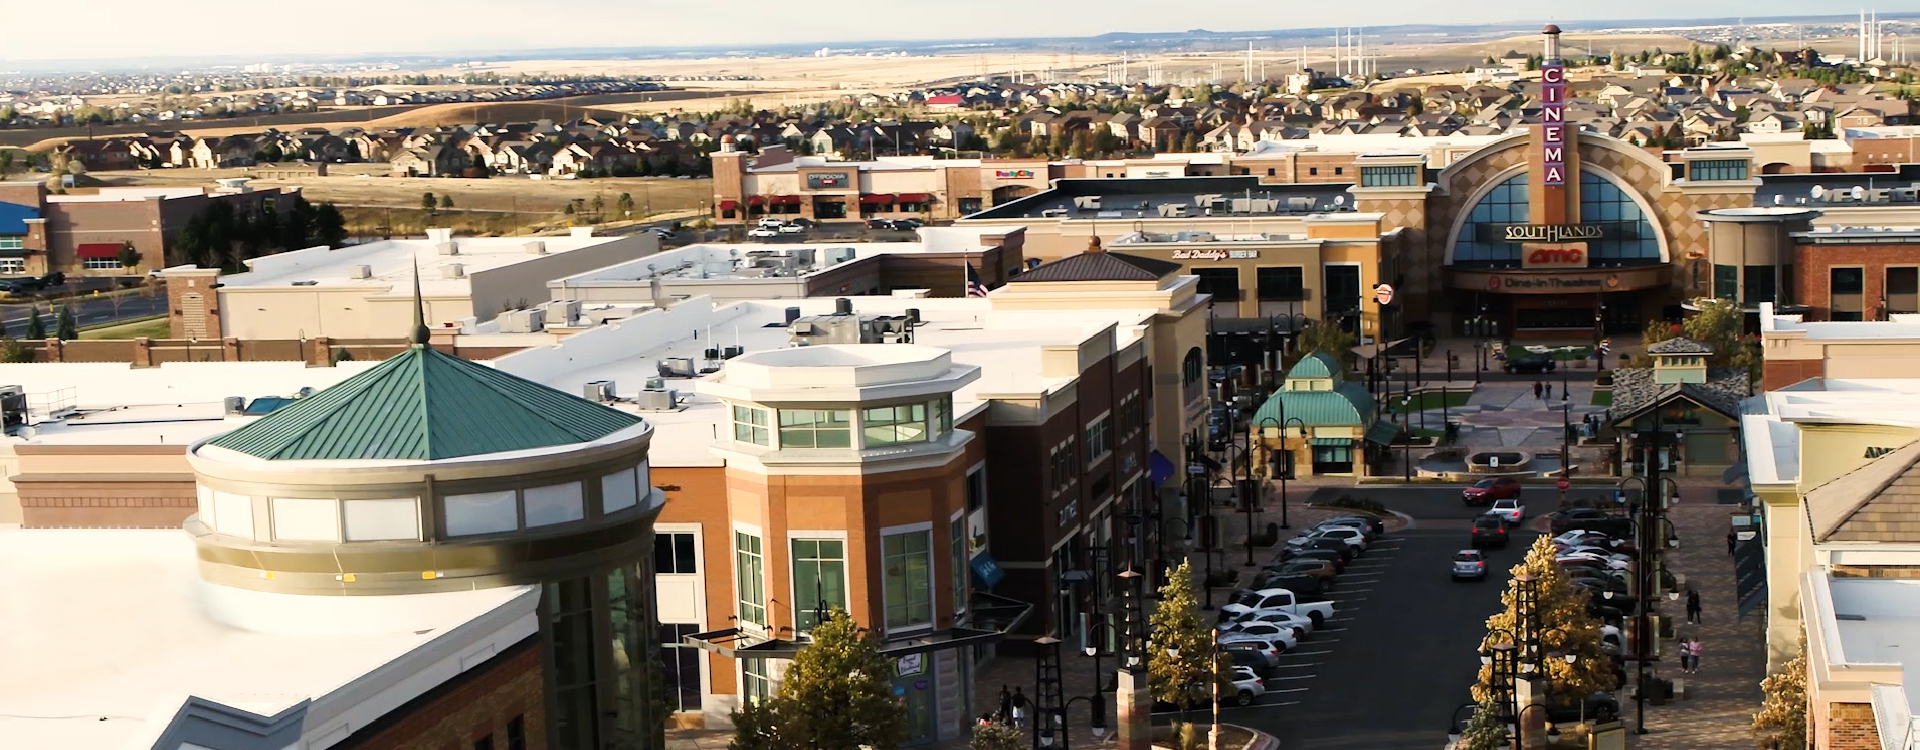 Shopping at Southlands - Aurora, CO